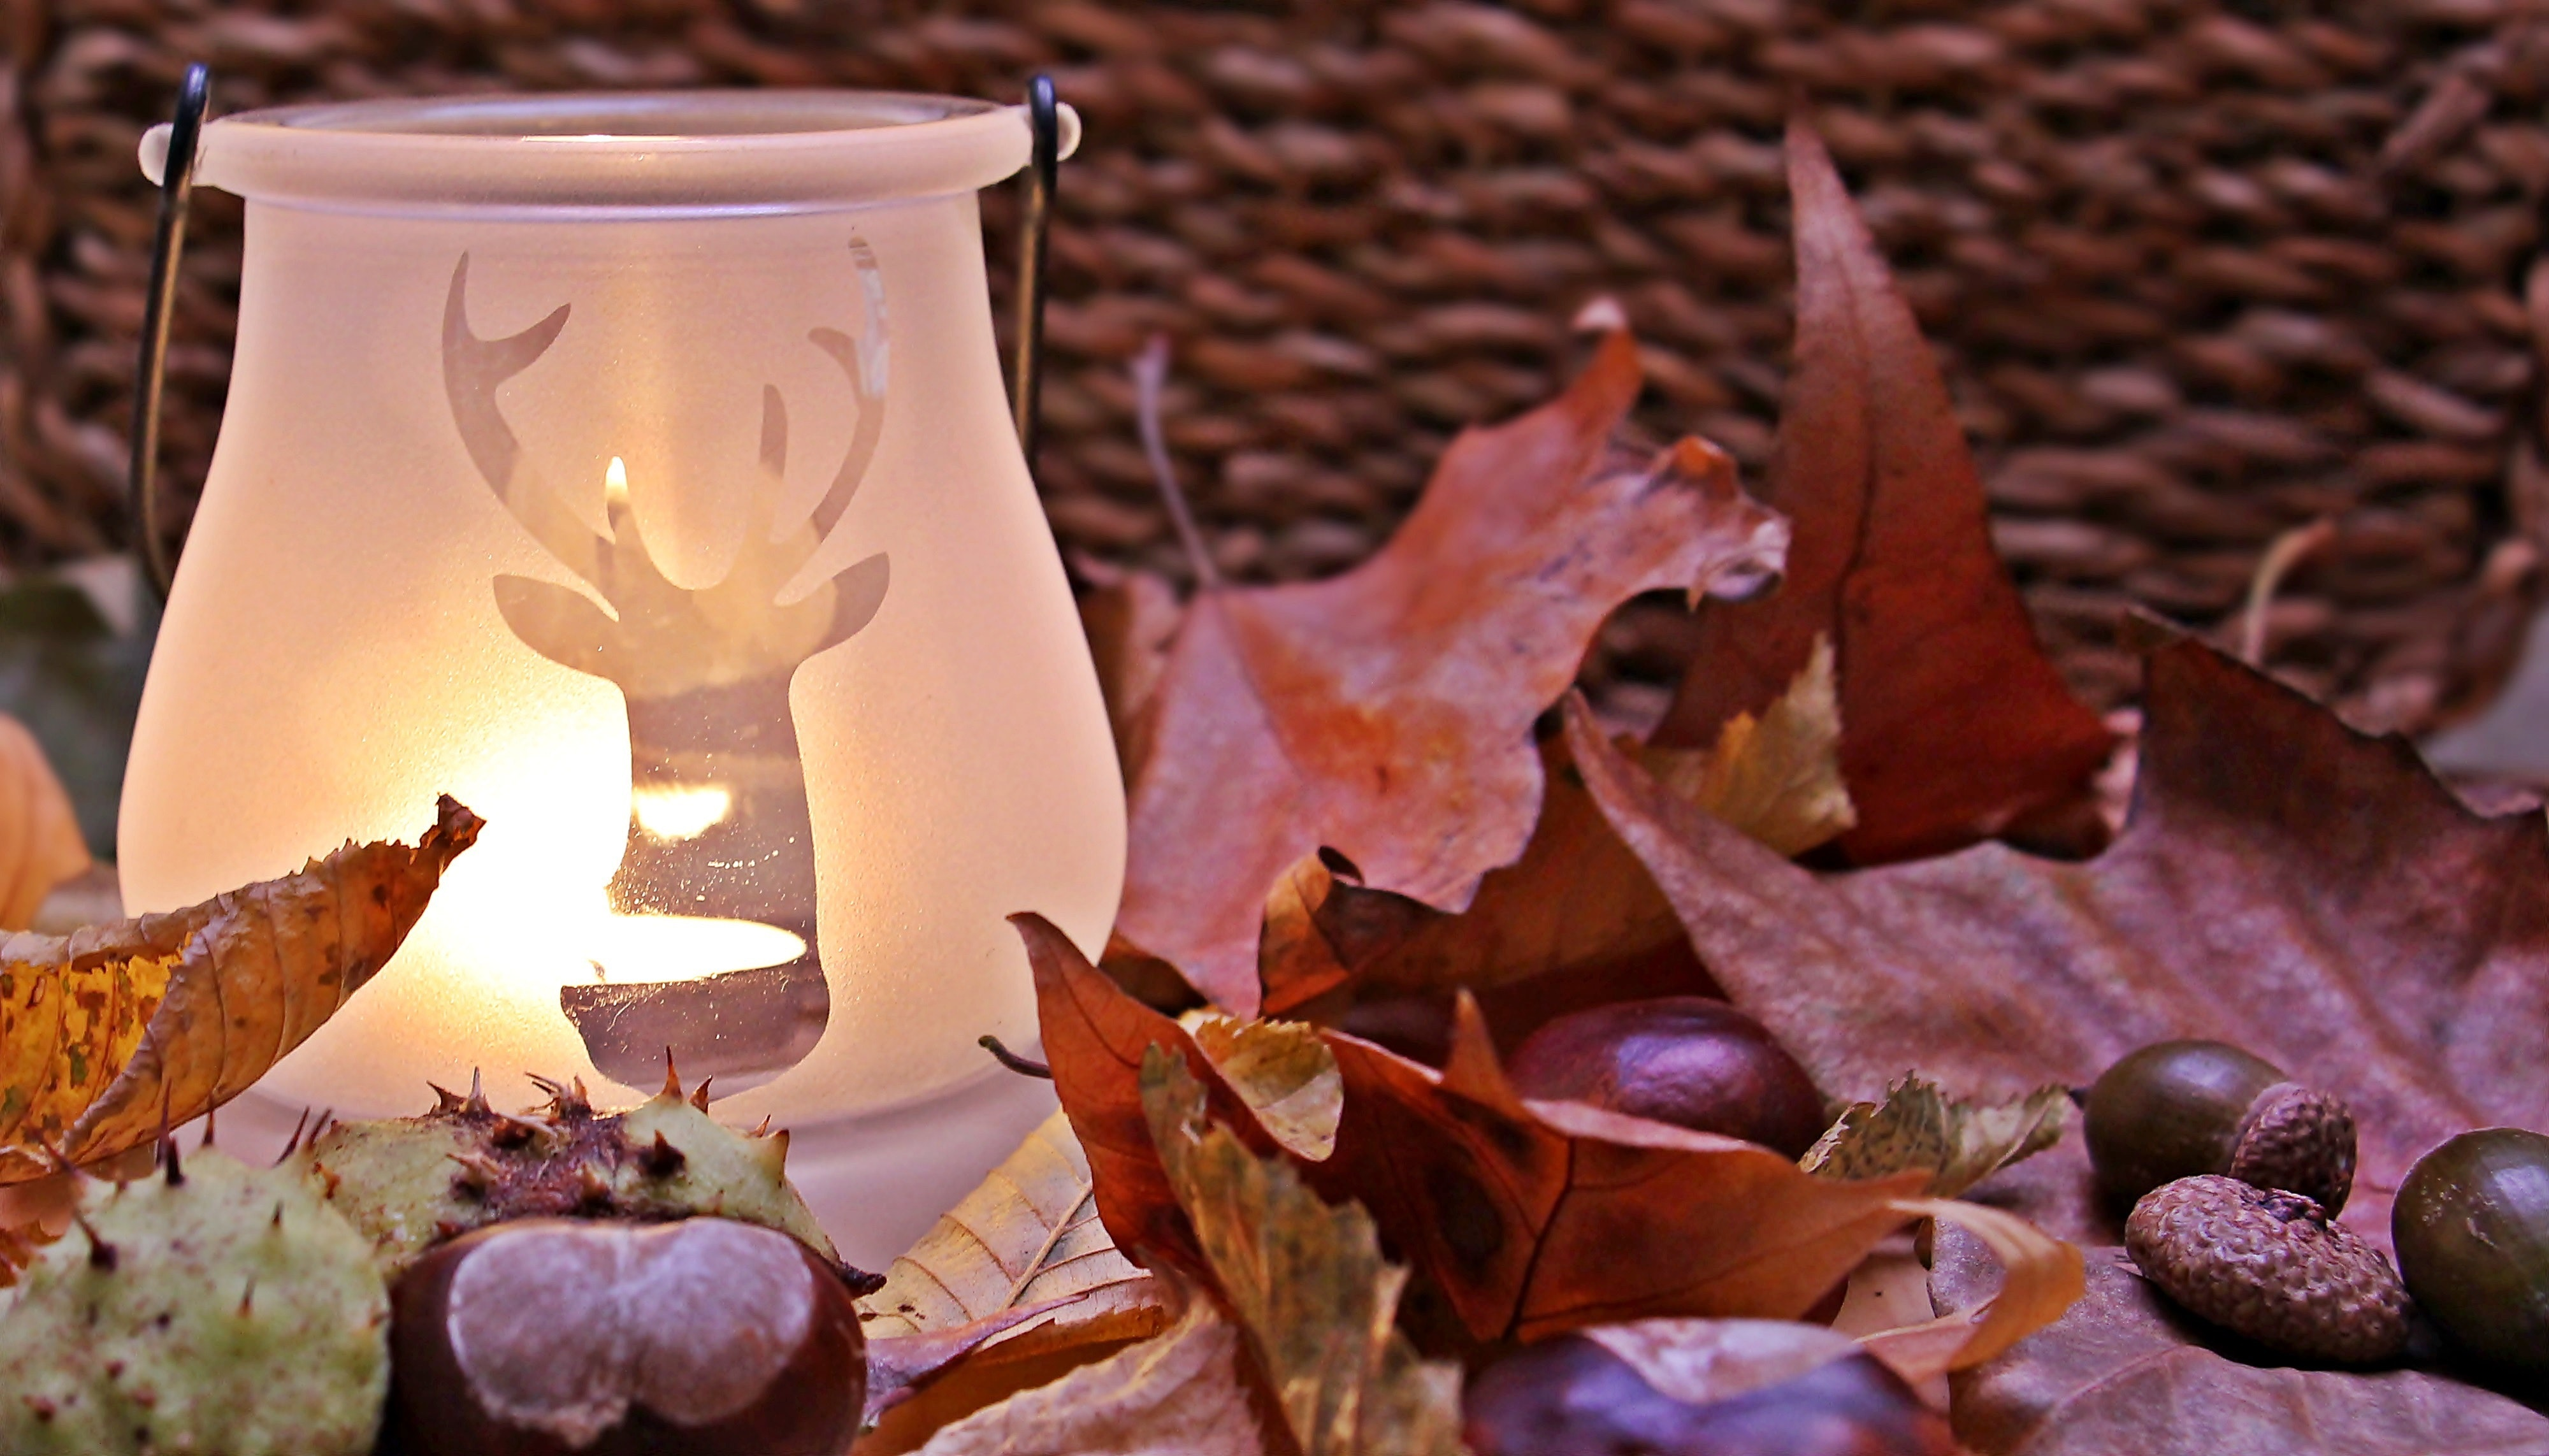 Winter Stag and Candle